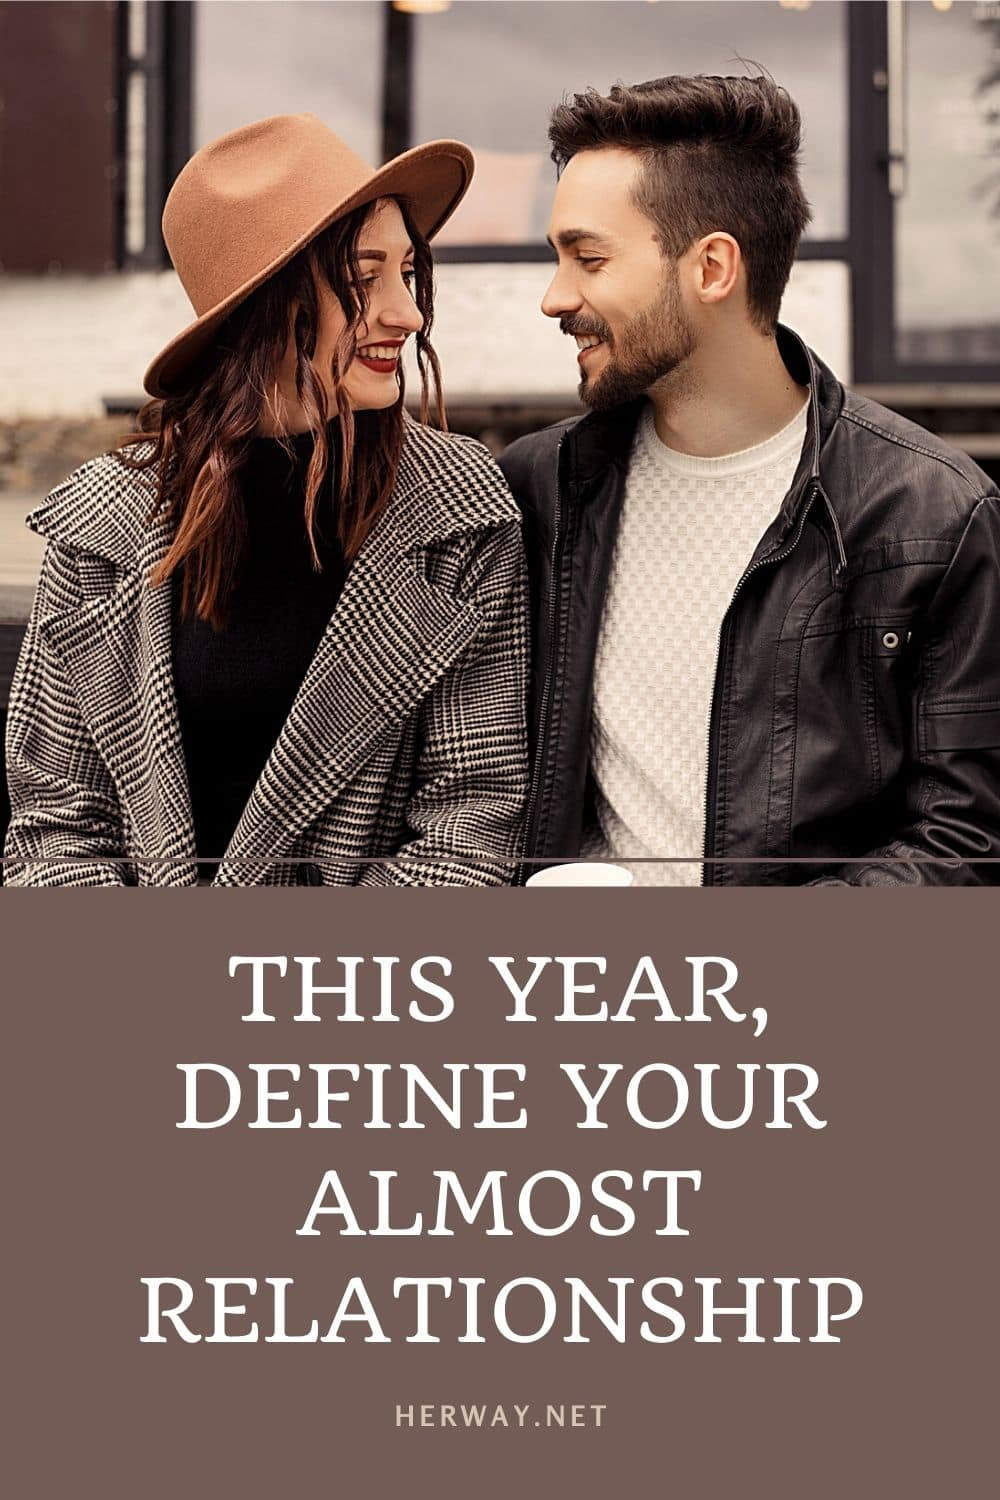 This Year, Define Your Almost Relationship